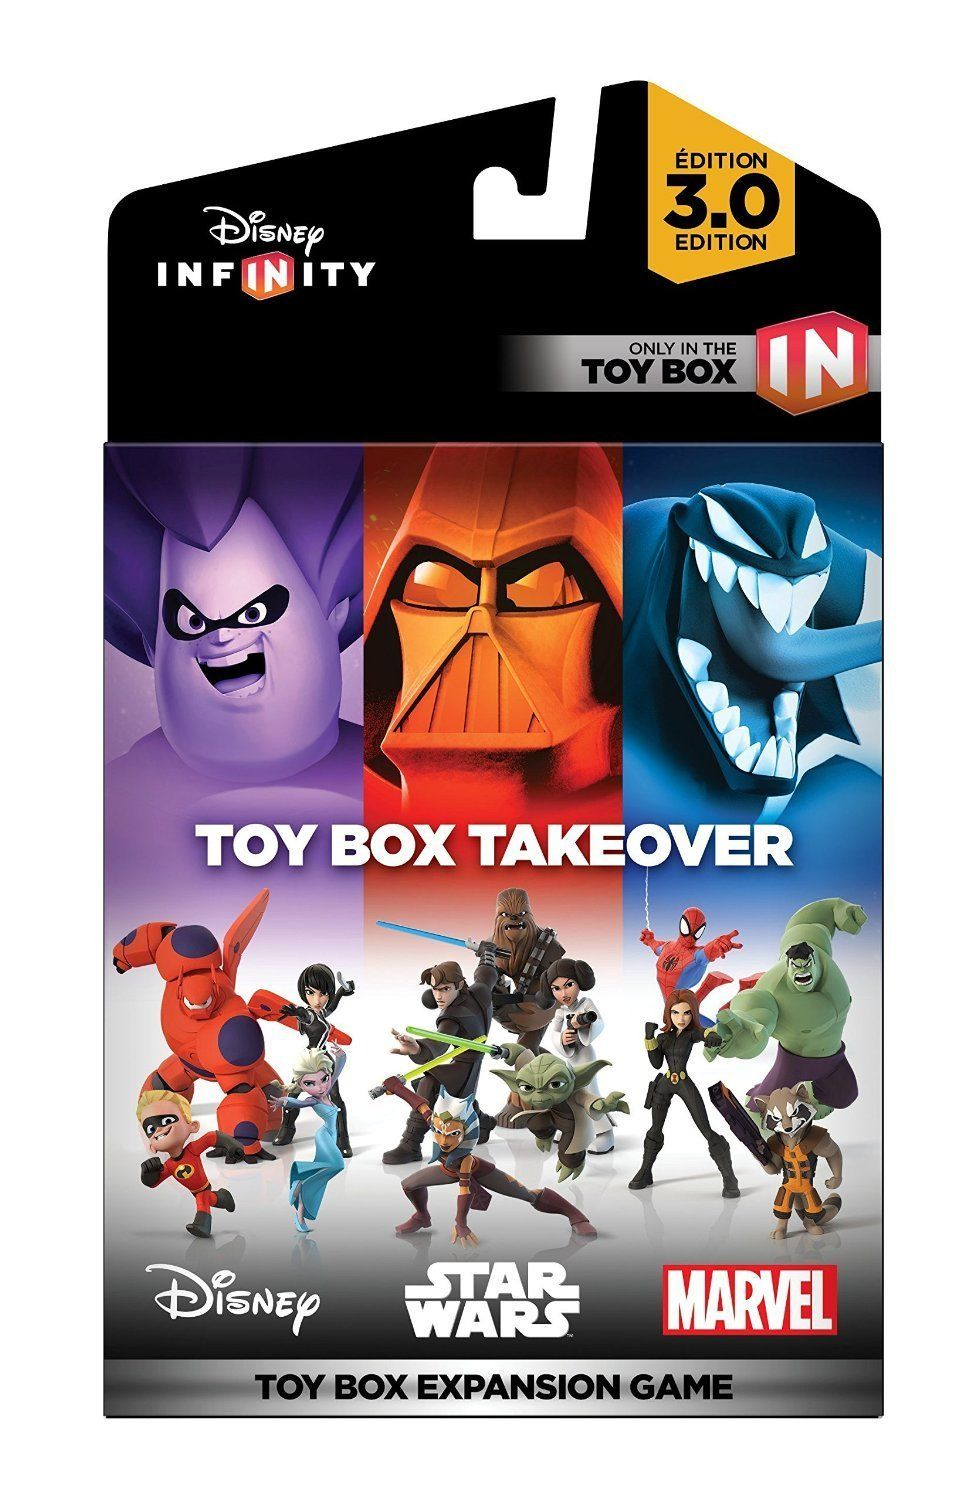 Disney Infinity 3.0 Edition Toy Box Takeover or Speedway